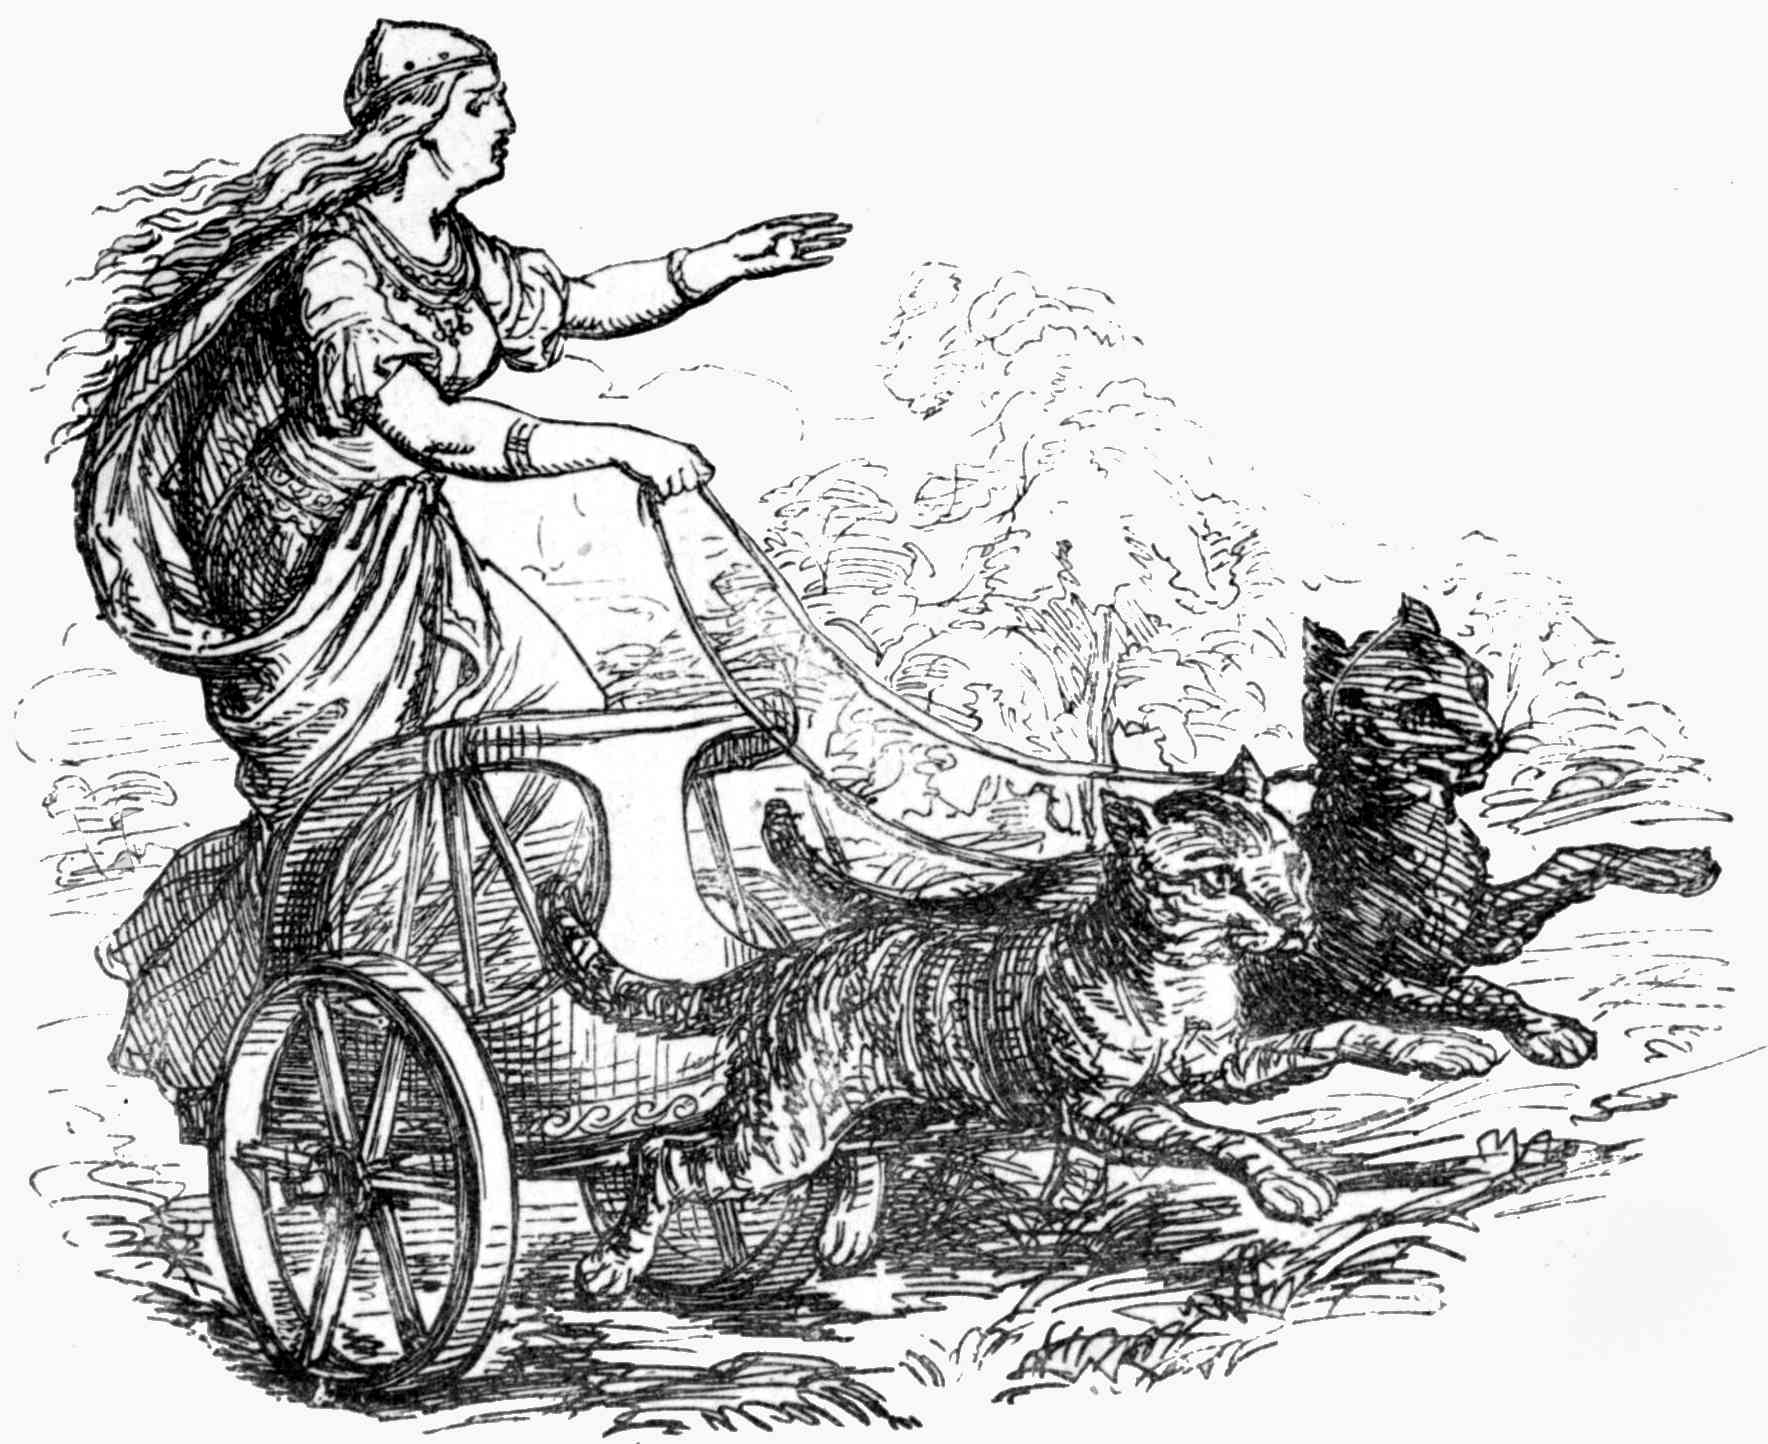 Freyja with carriage pulled by cats